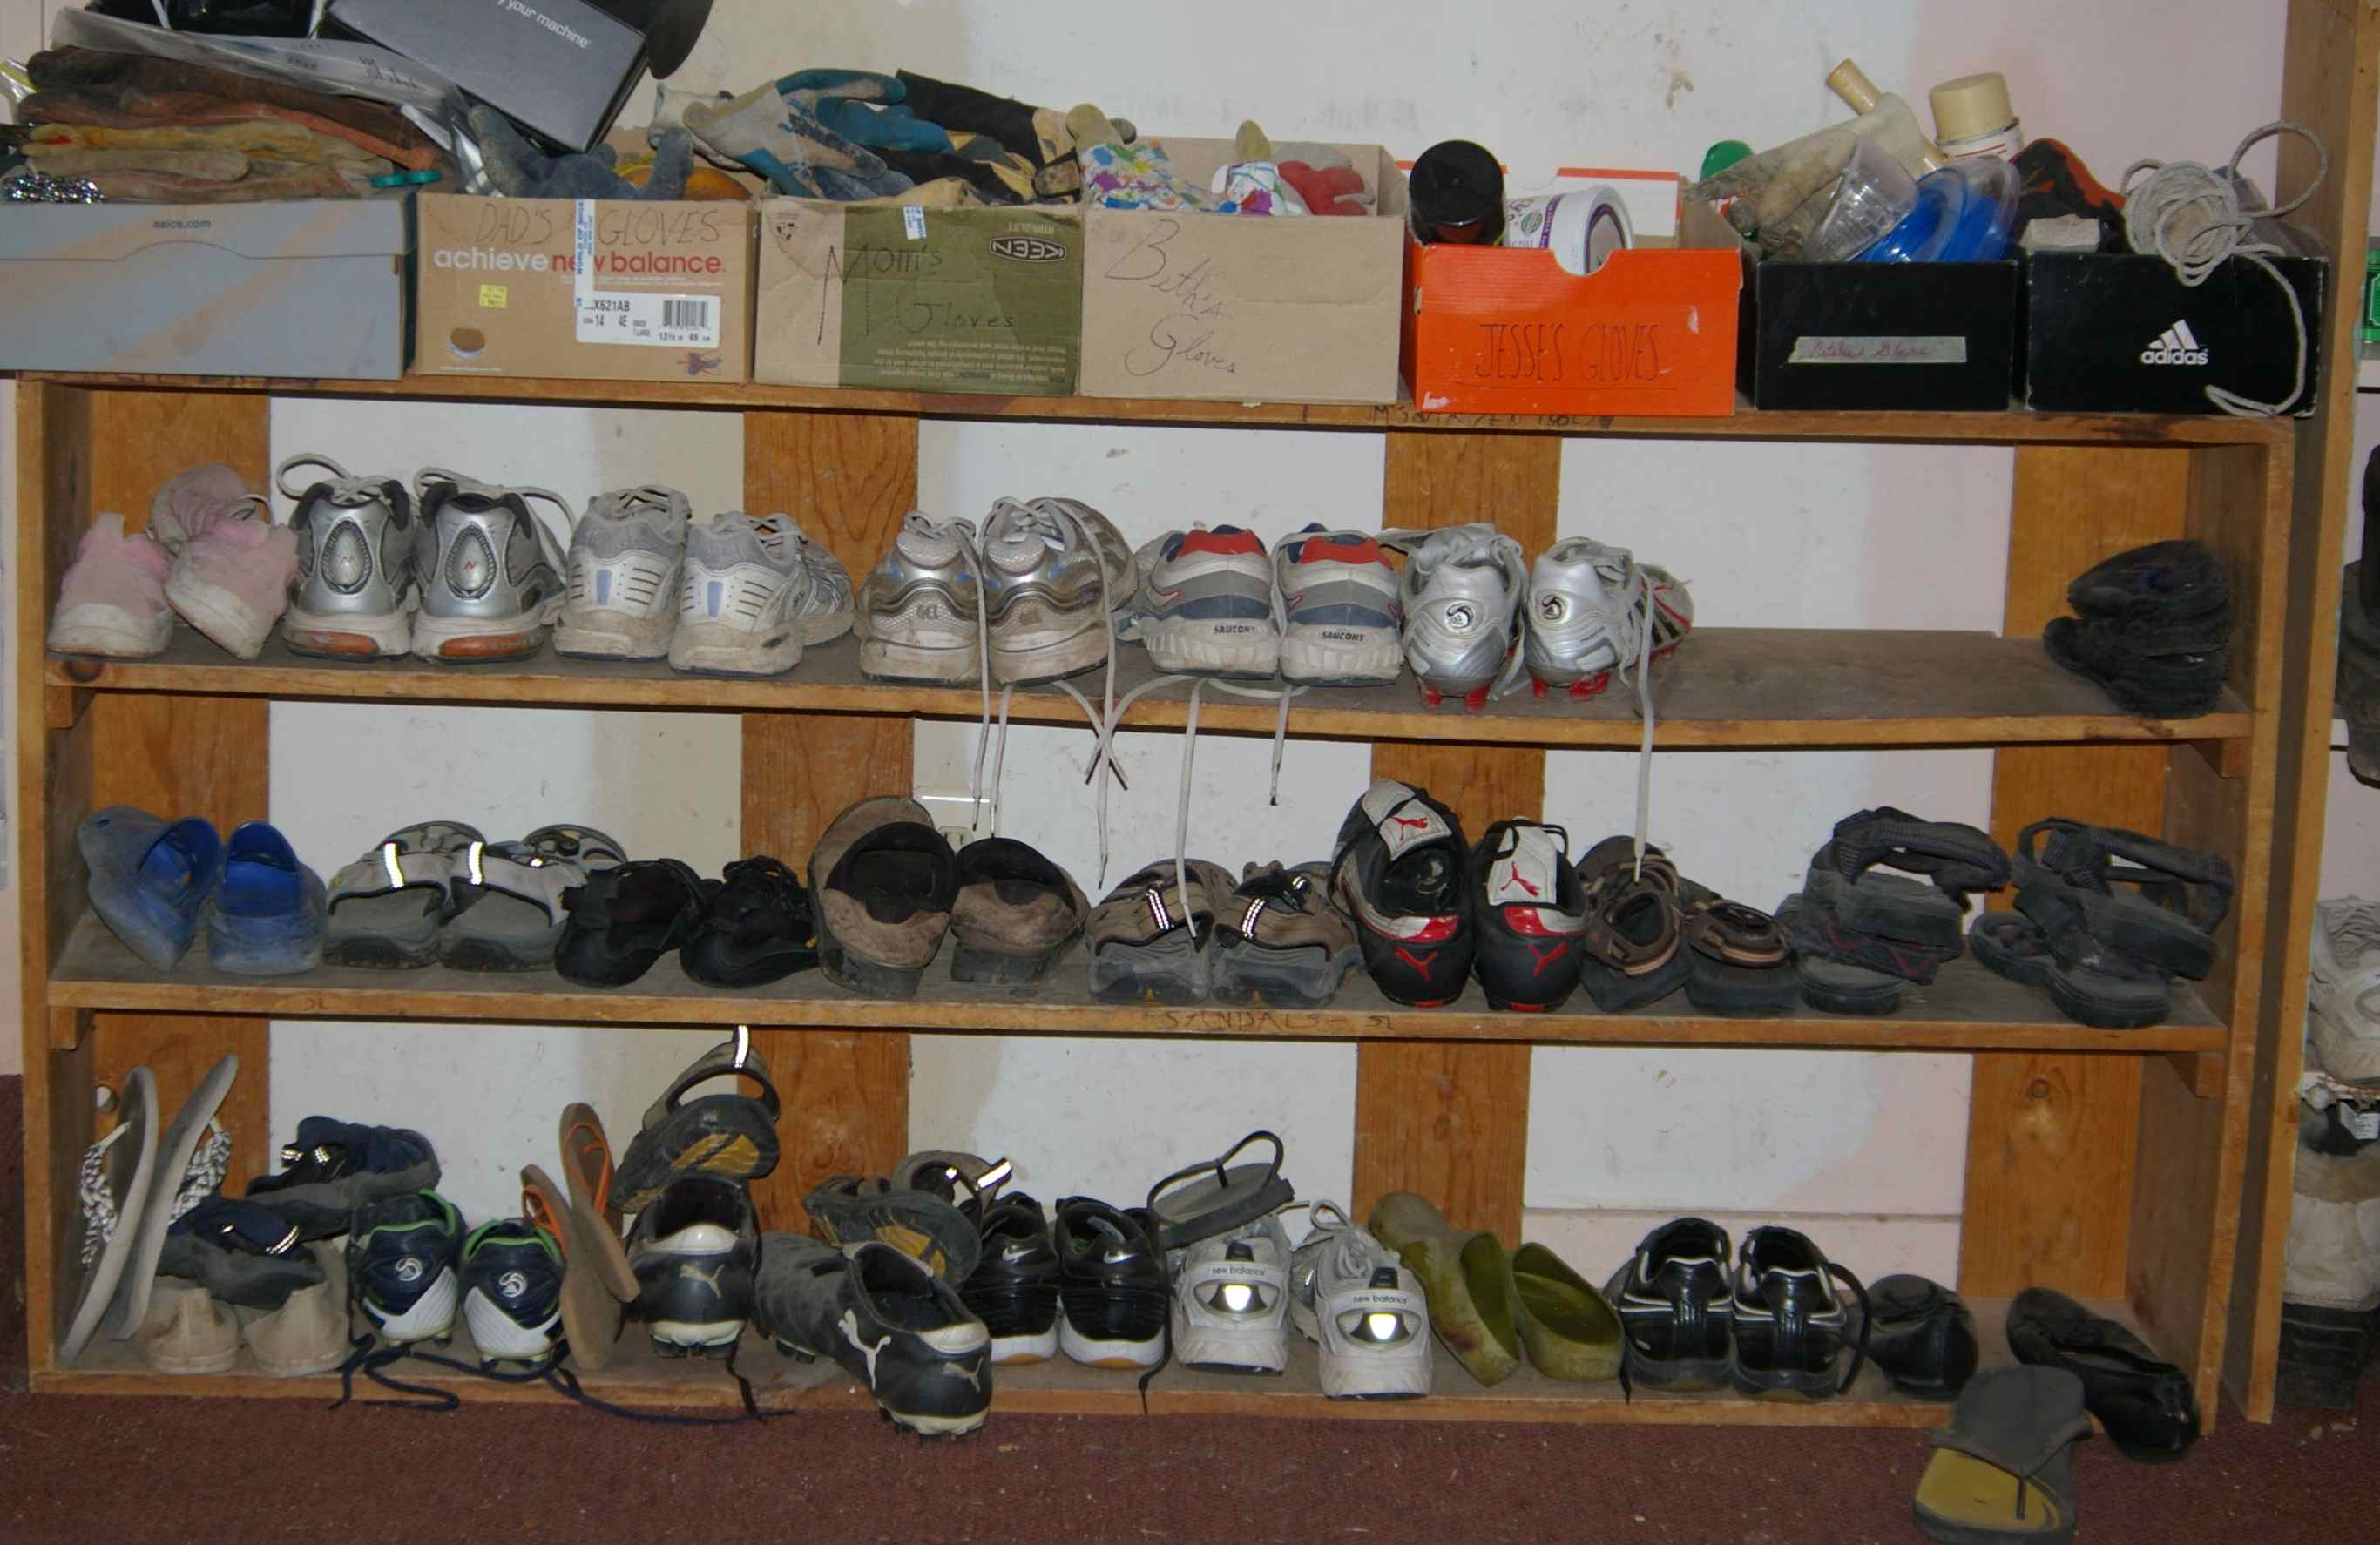 The Shoe Shelf System For Cleaner Floors In The House